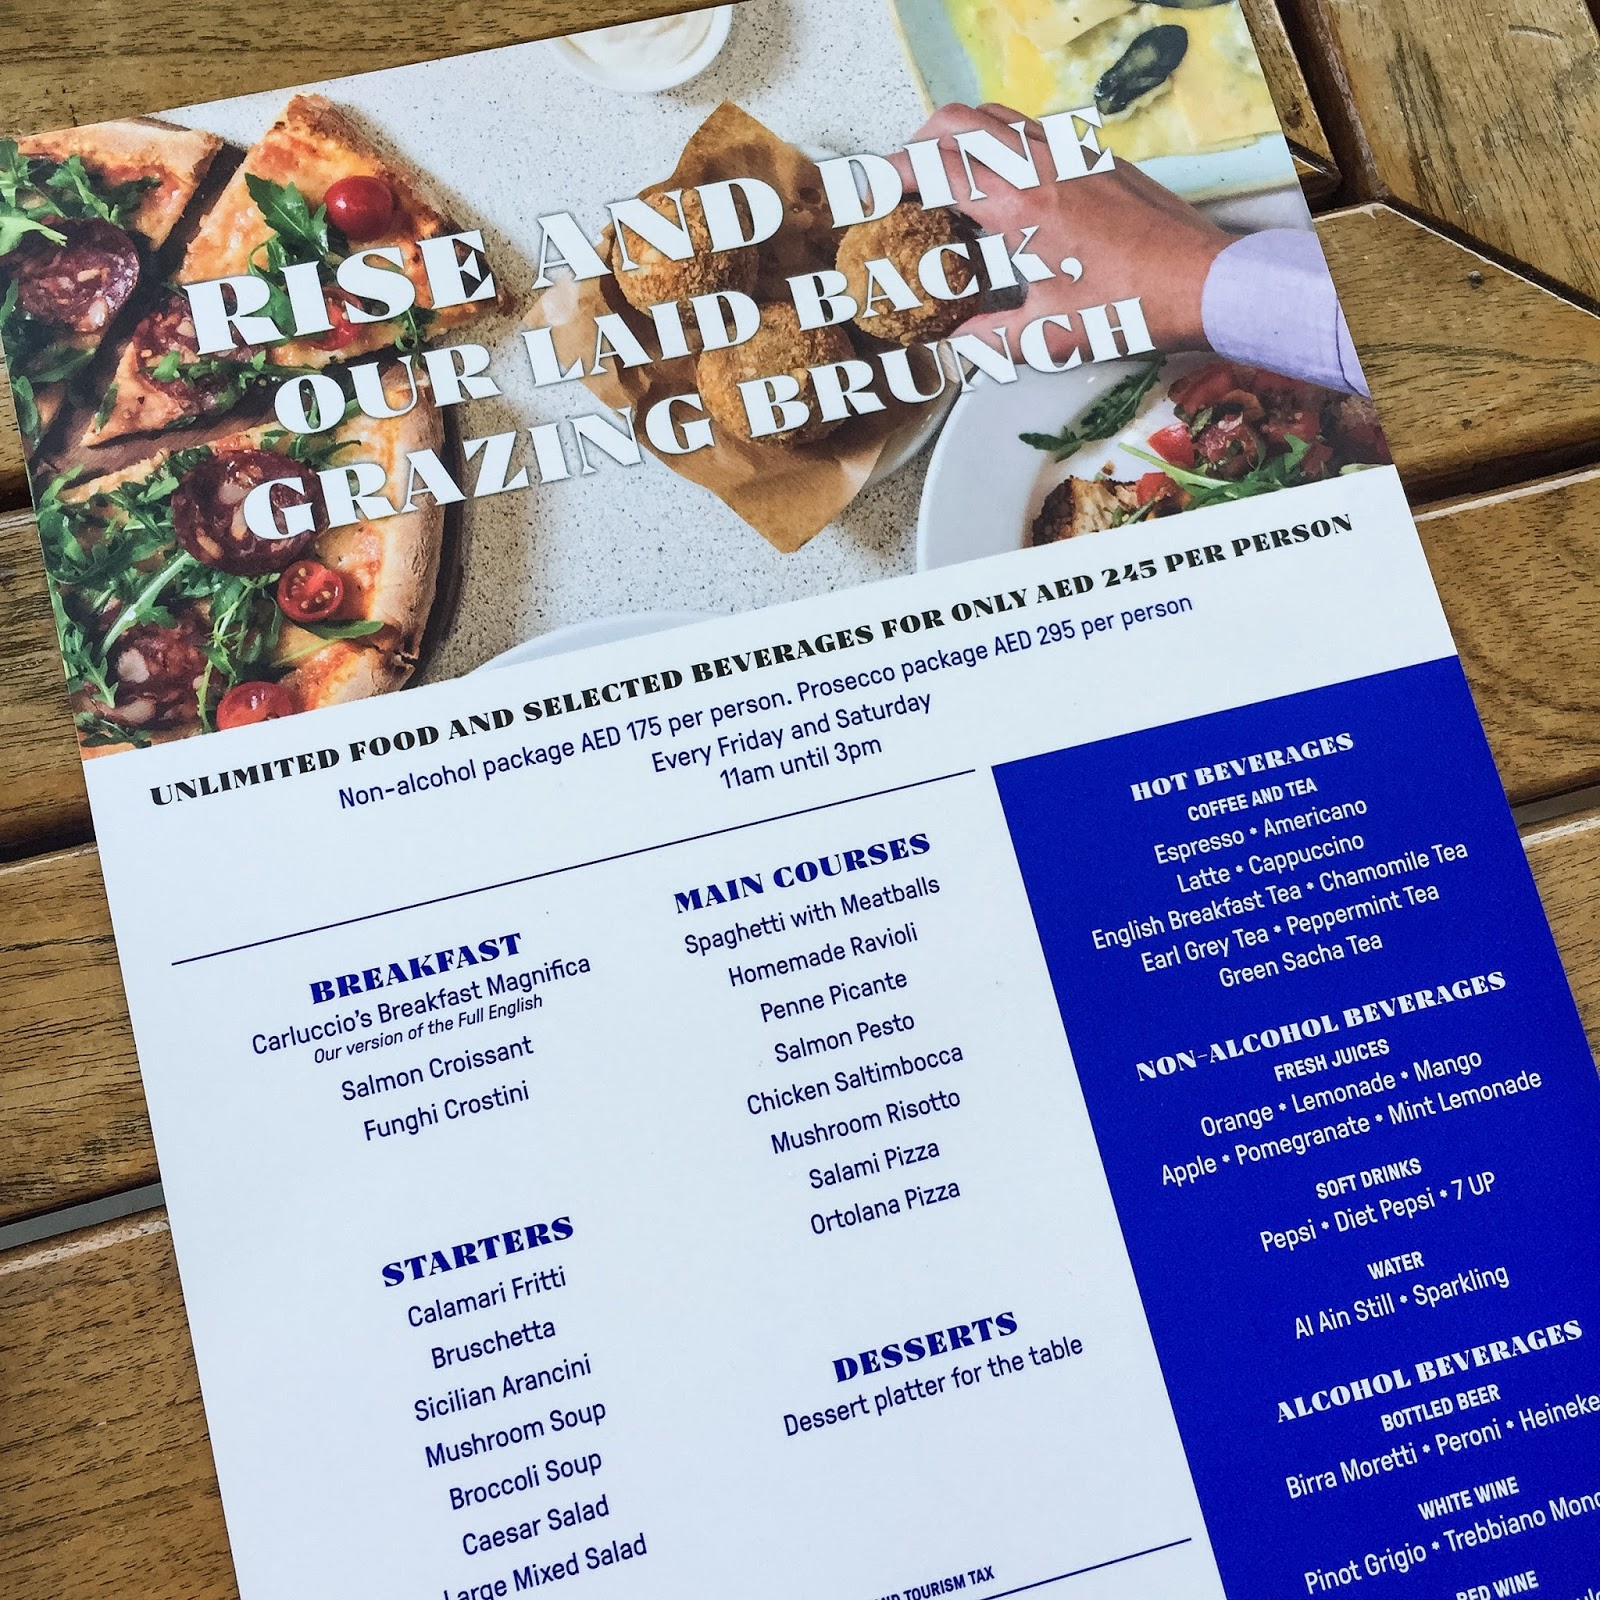 Carluccio's Abu Dhabi Rise & Dine Brunch Review